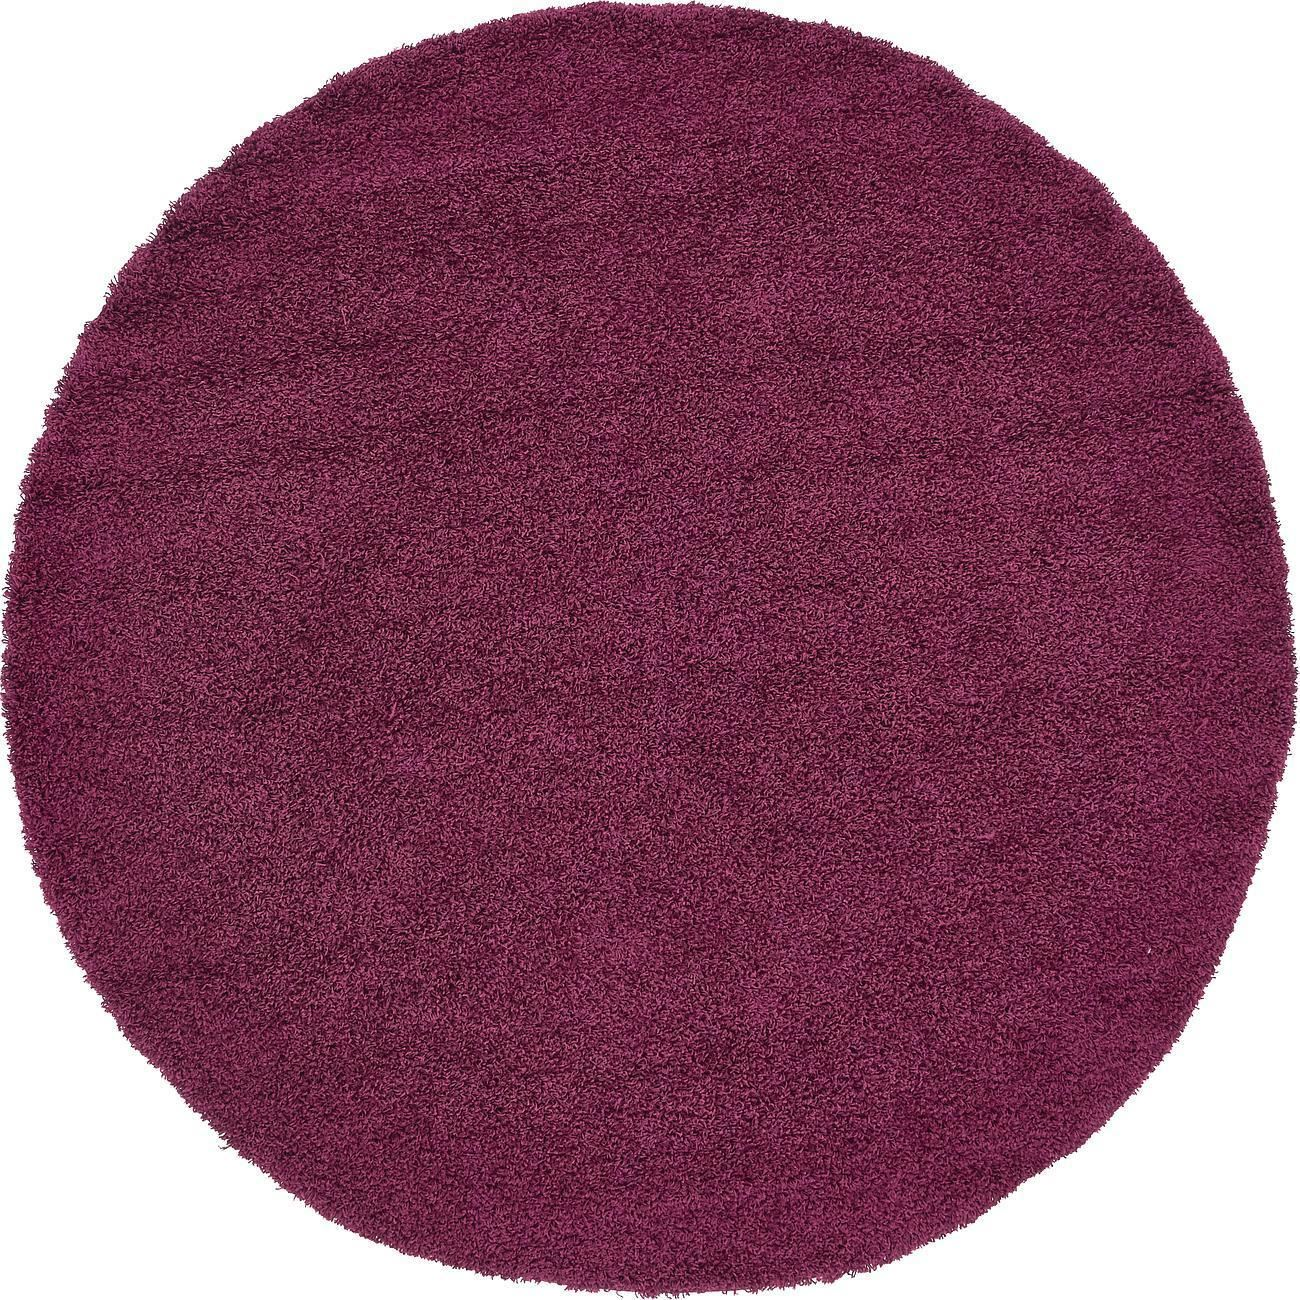 Soft Thick Shaggy Modern Fluffy Warm Colour Rug Carpet